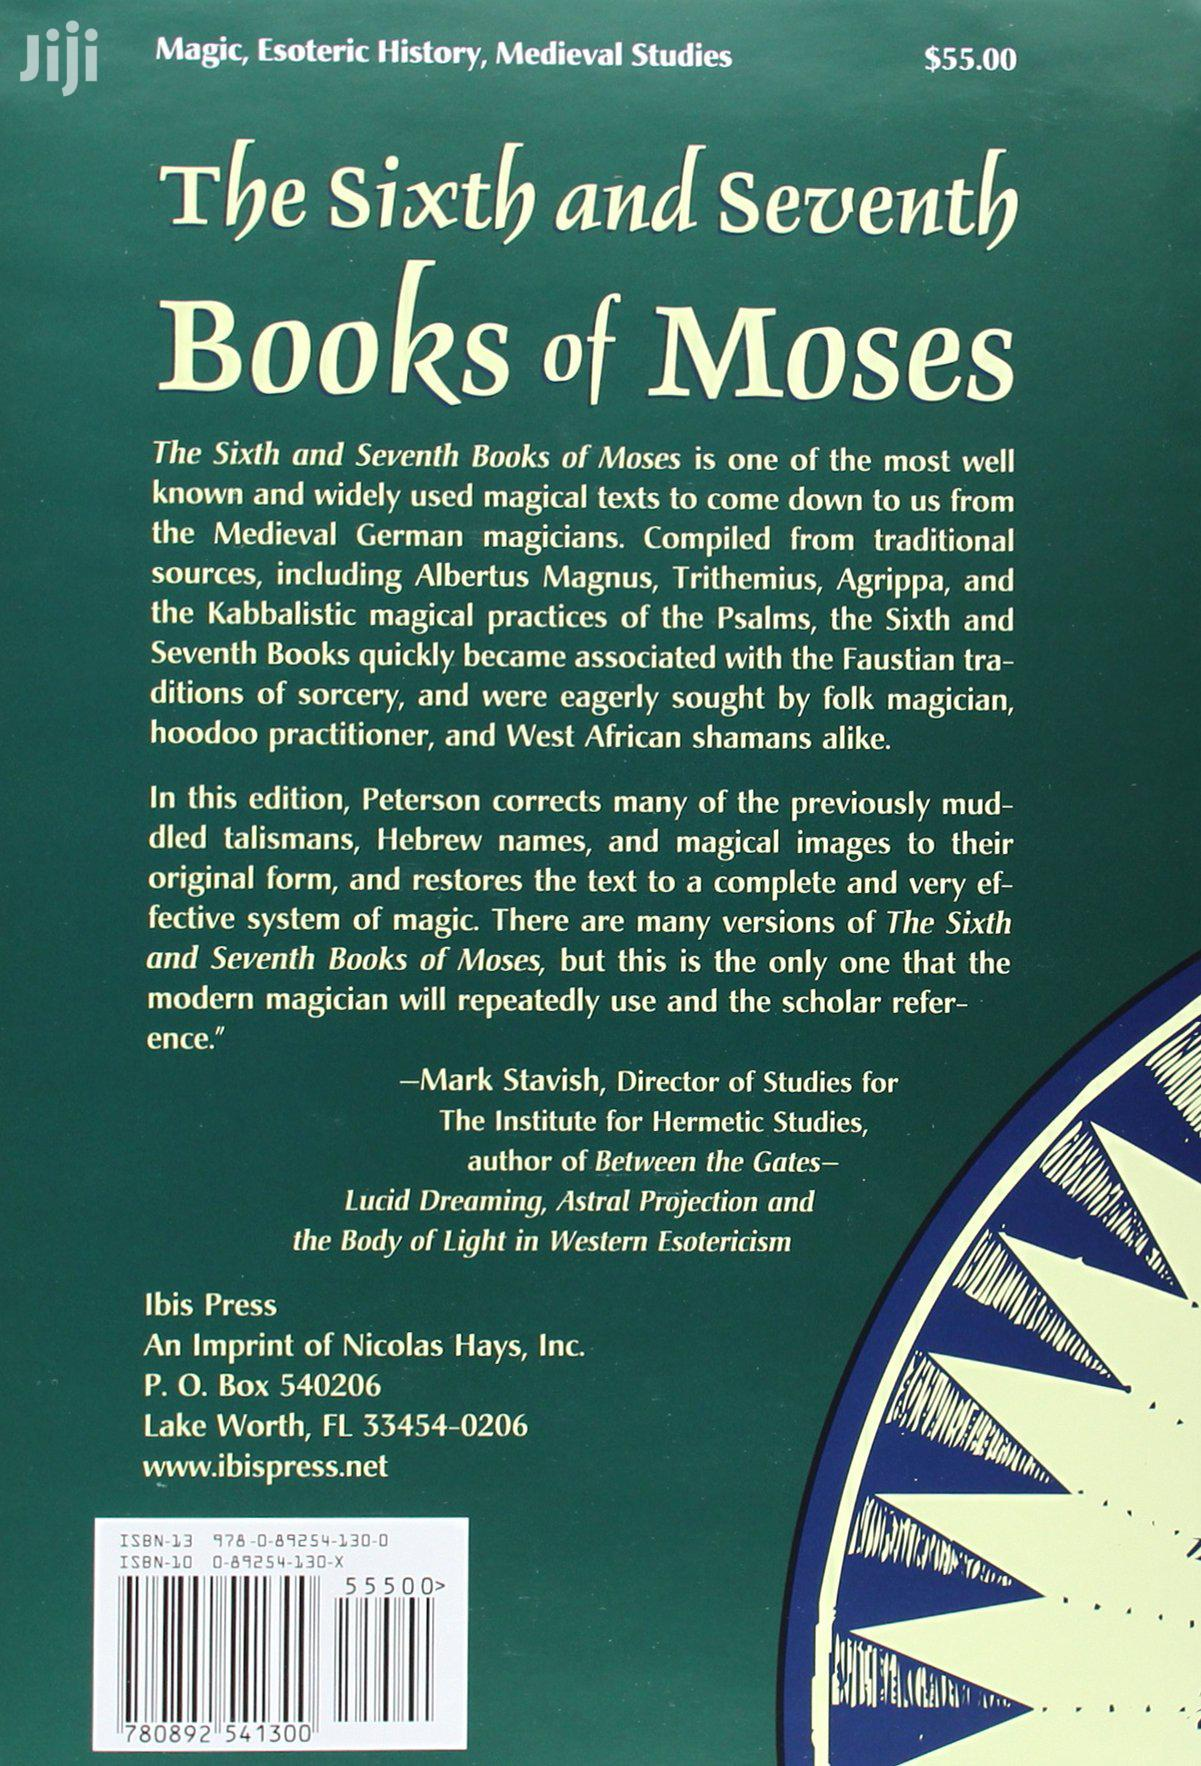 The Sixth and Seventh Books of Moses Ebook(Softcopy) | Books & Games for sale in Accra Metropolitan, Greater Accra, Ghana